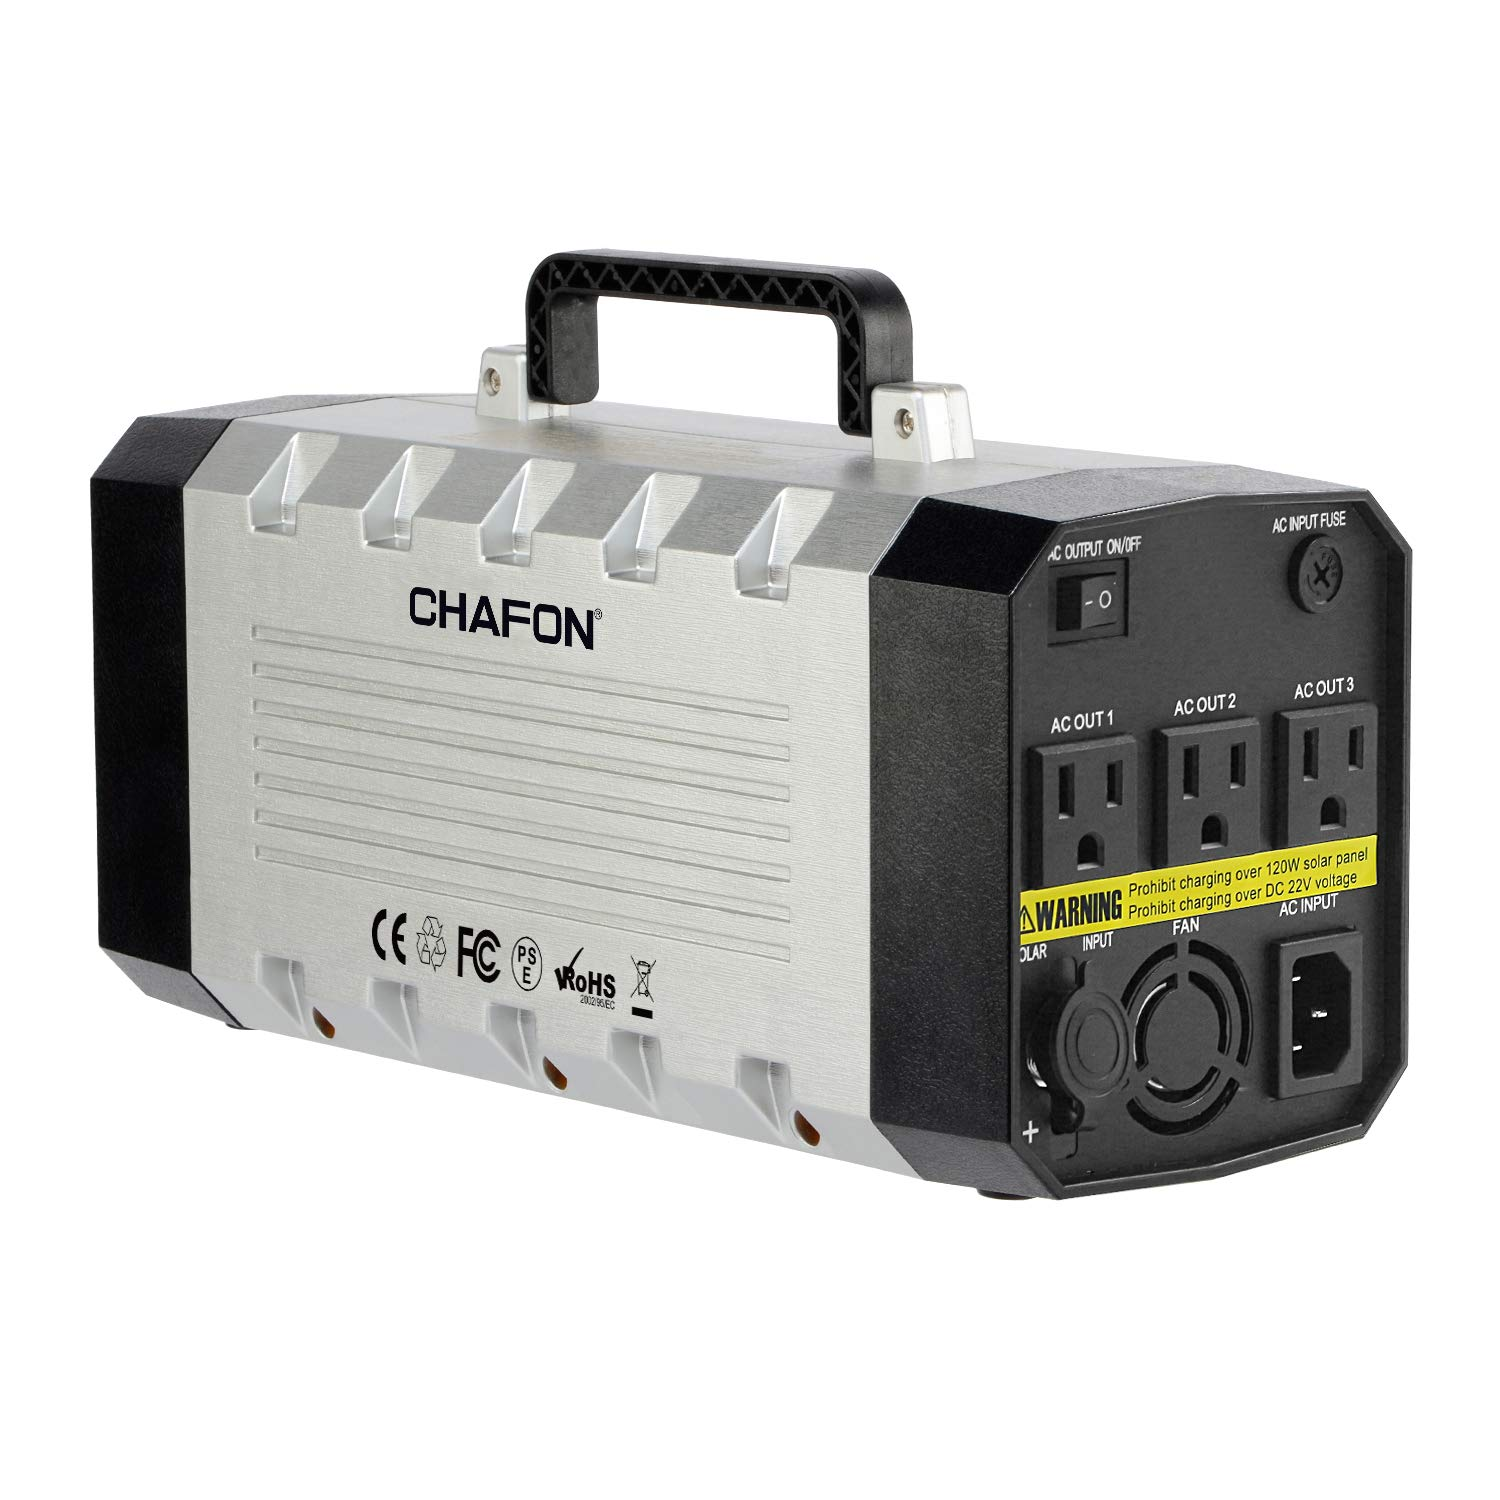 CHAFON Portable Generator 288WH UPS Battery Backup Pack Power Station with 110V/500W AC Outlet,DC 12V,USB Output for Camping,Home Use